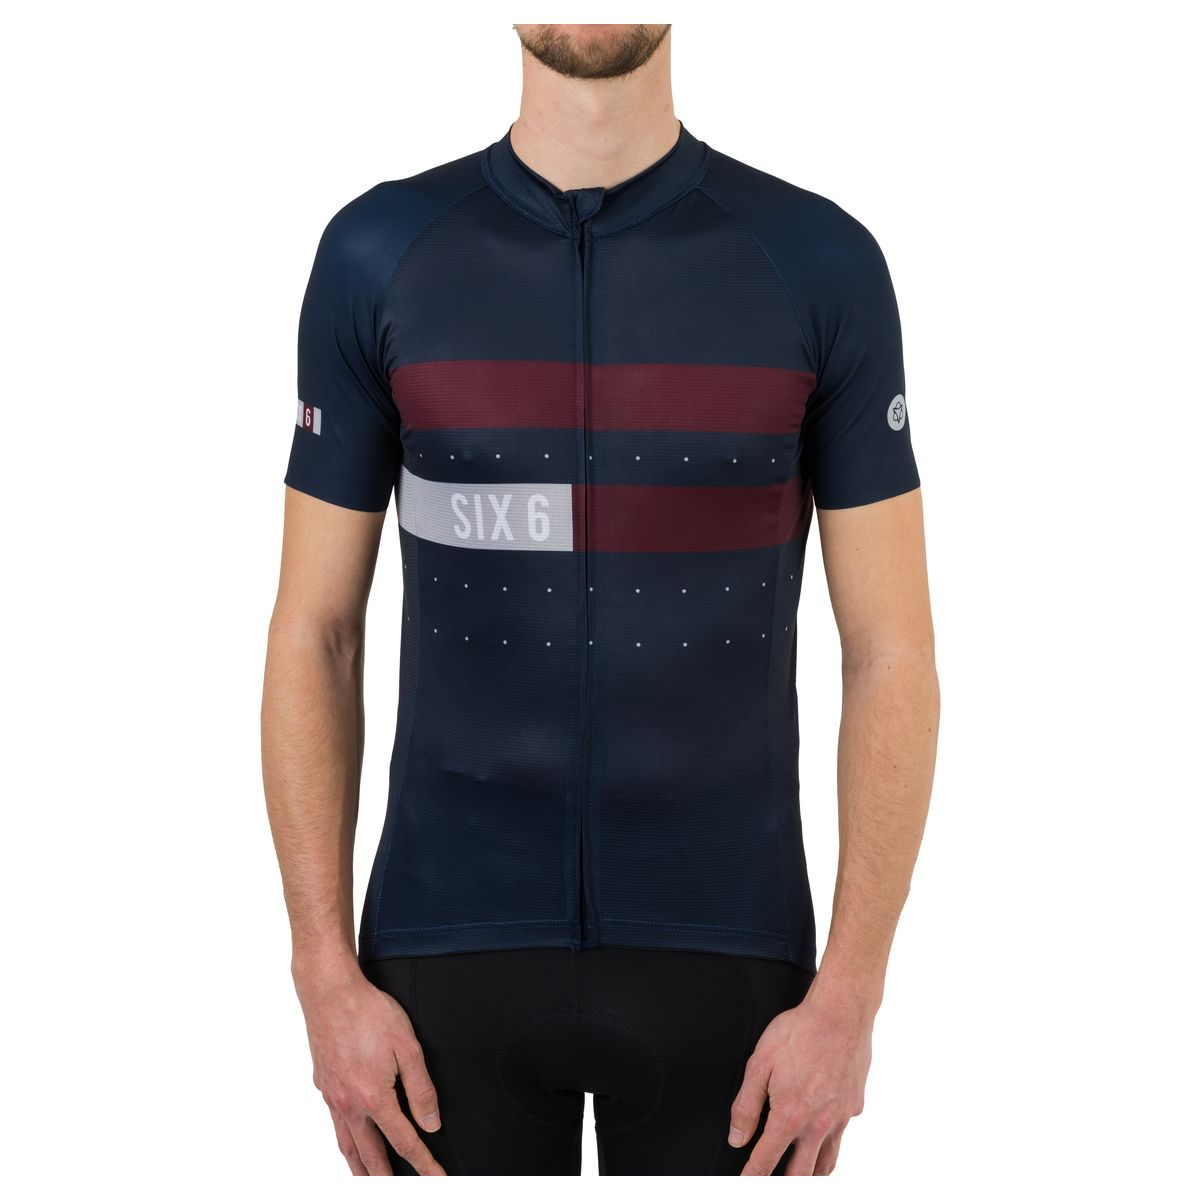 Classic Jersey SS Six6 Men fit example